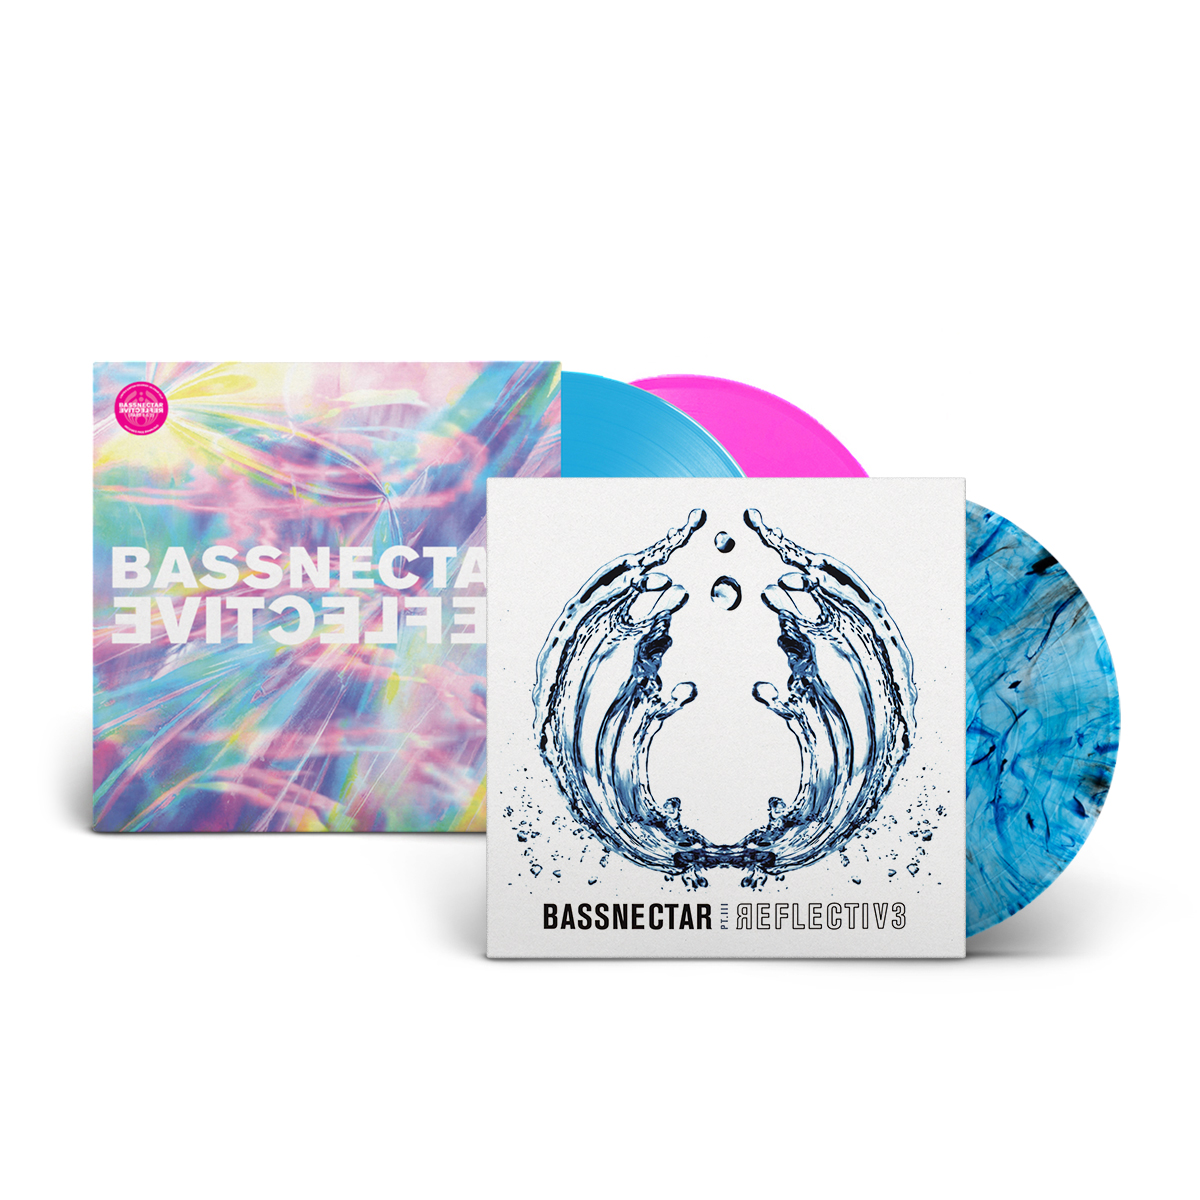 Reflective 1-3 Vinyl Bundle